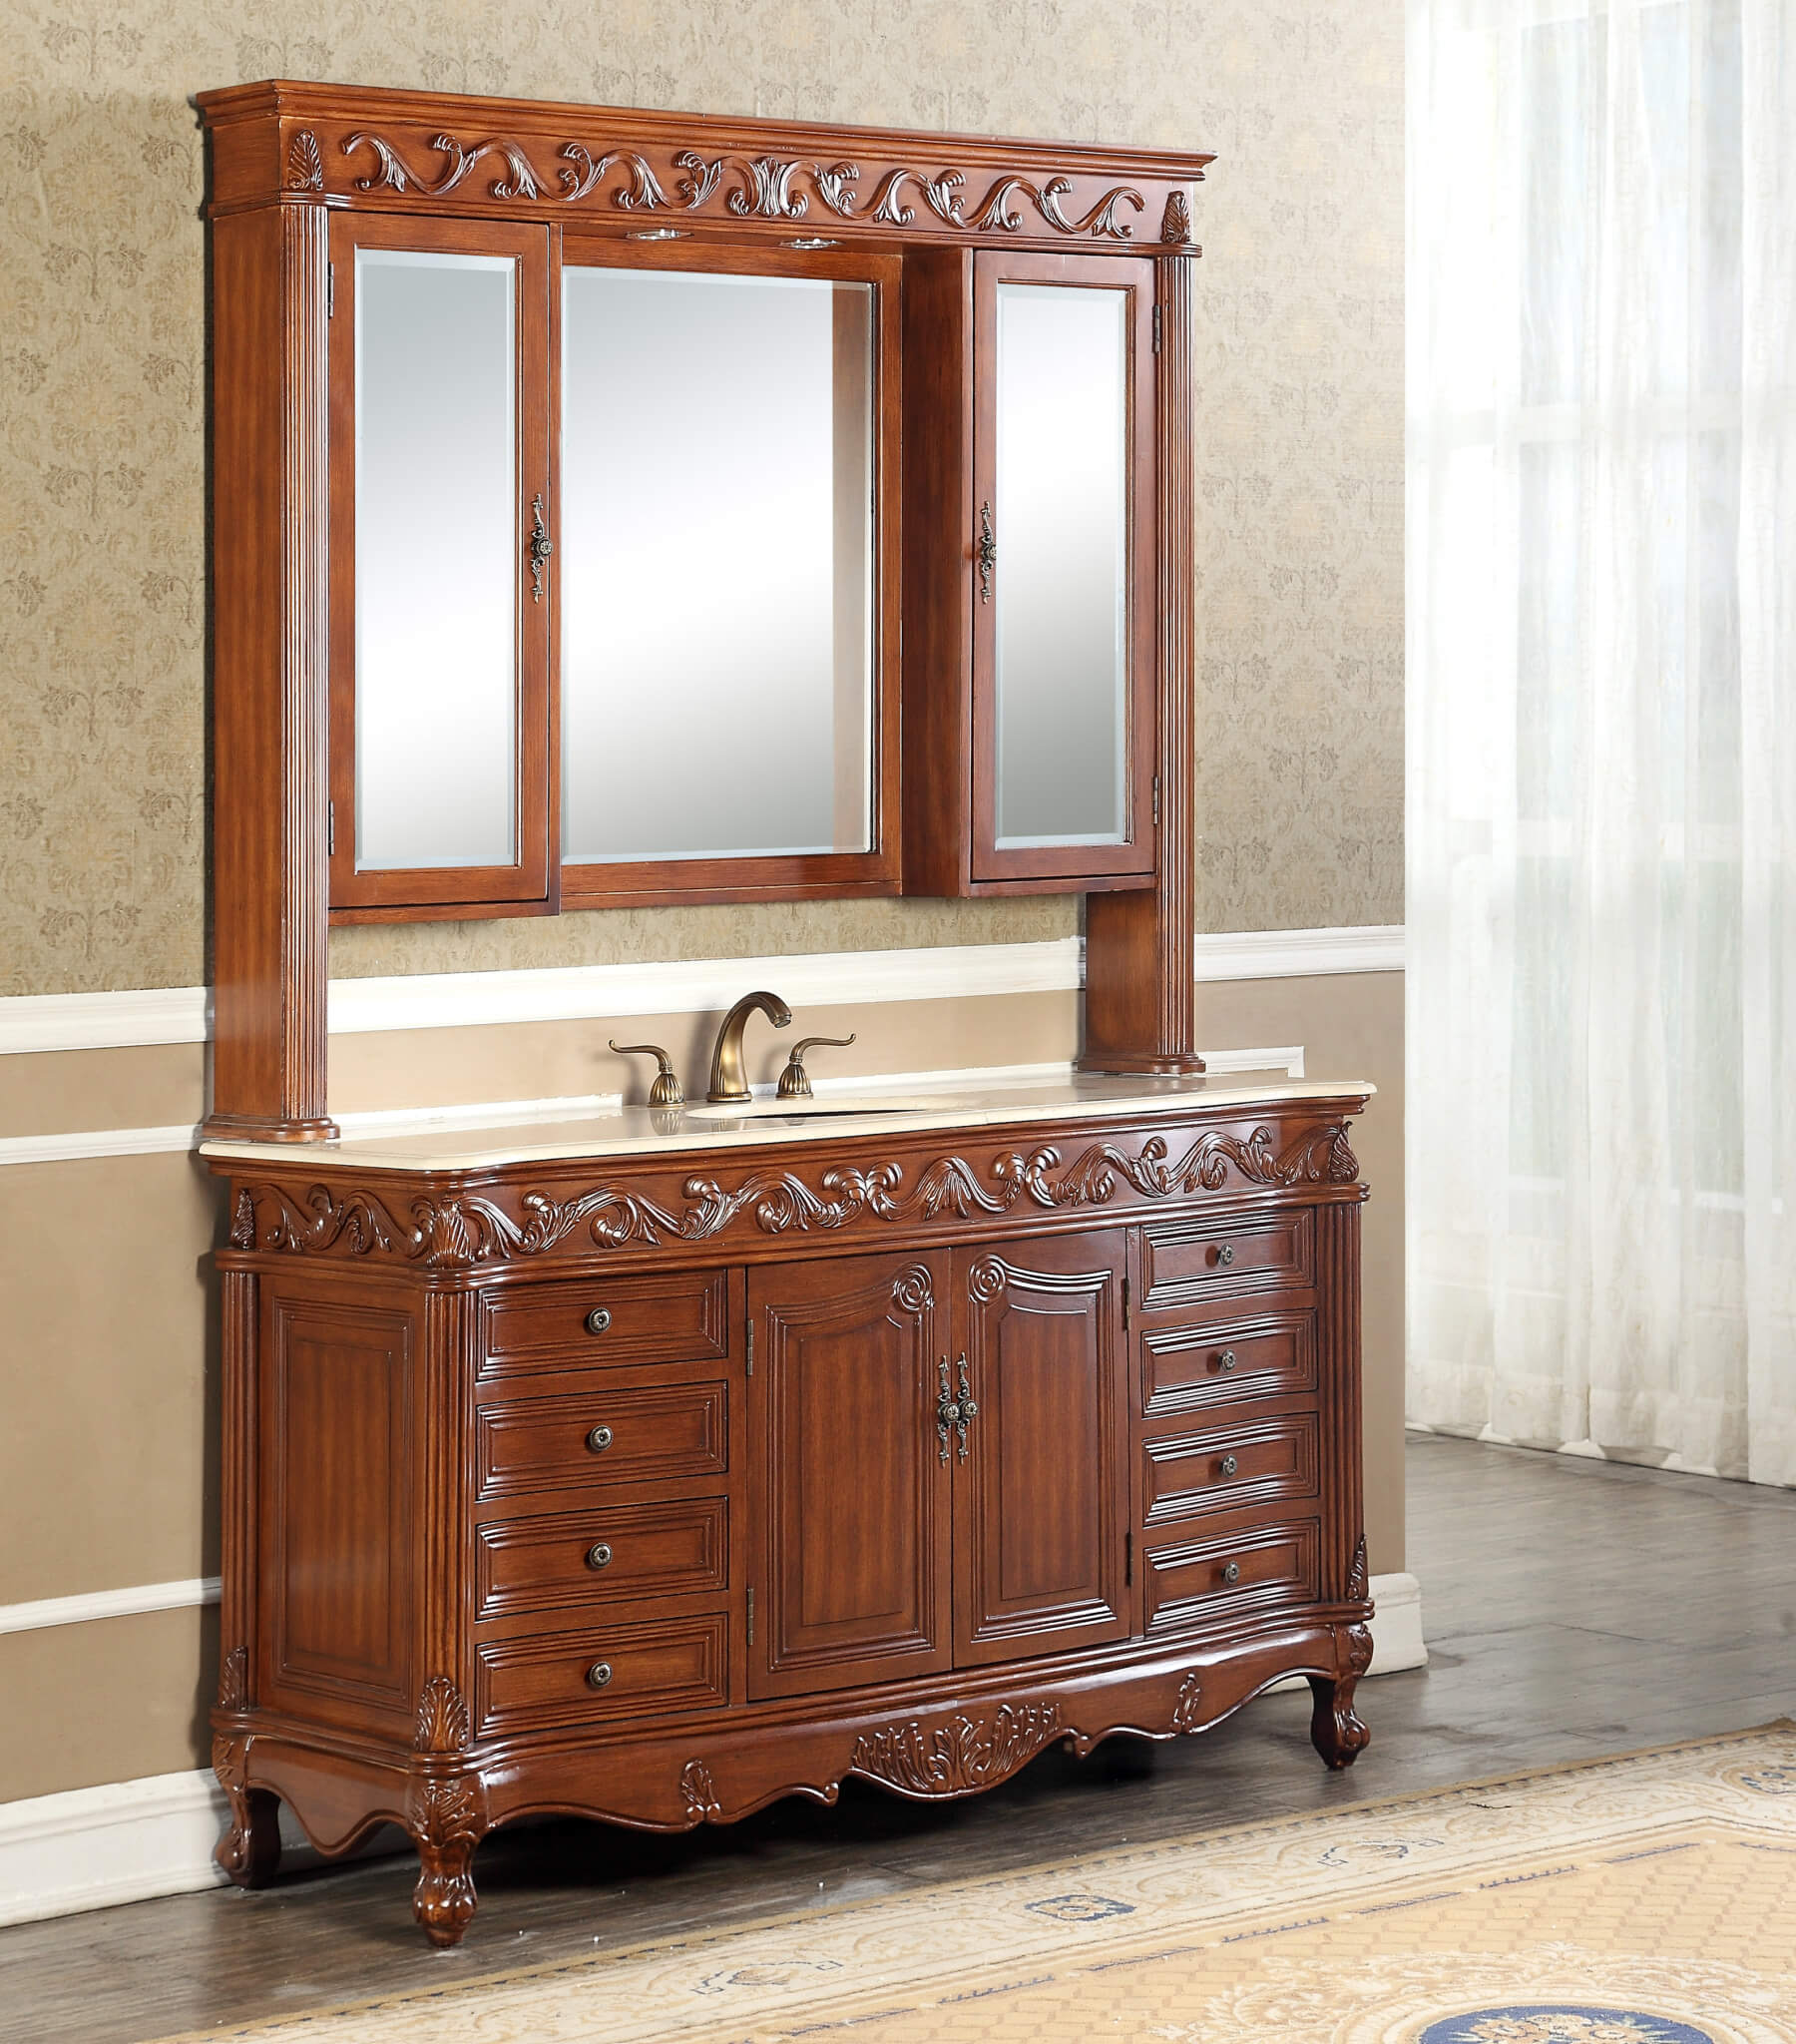 60-Inch Welsh Vanity | Single Sink Vanity | Vanity with Hutch